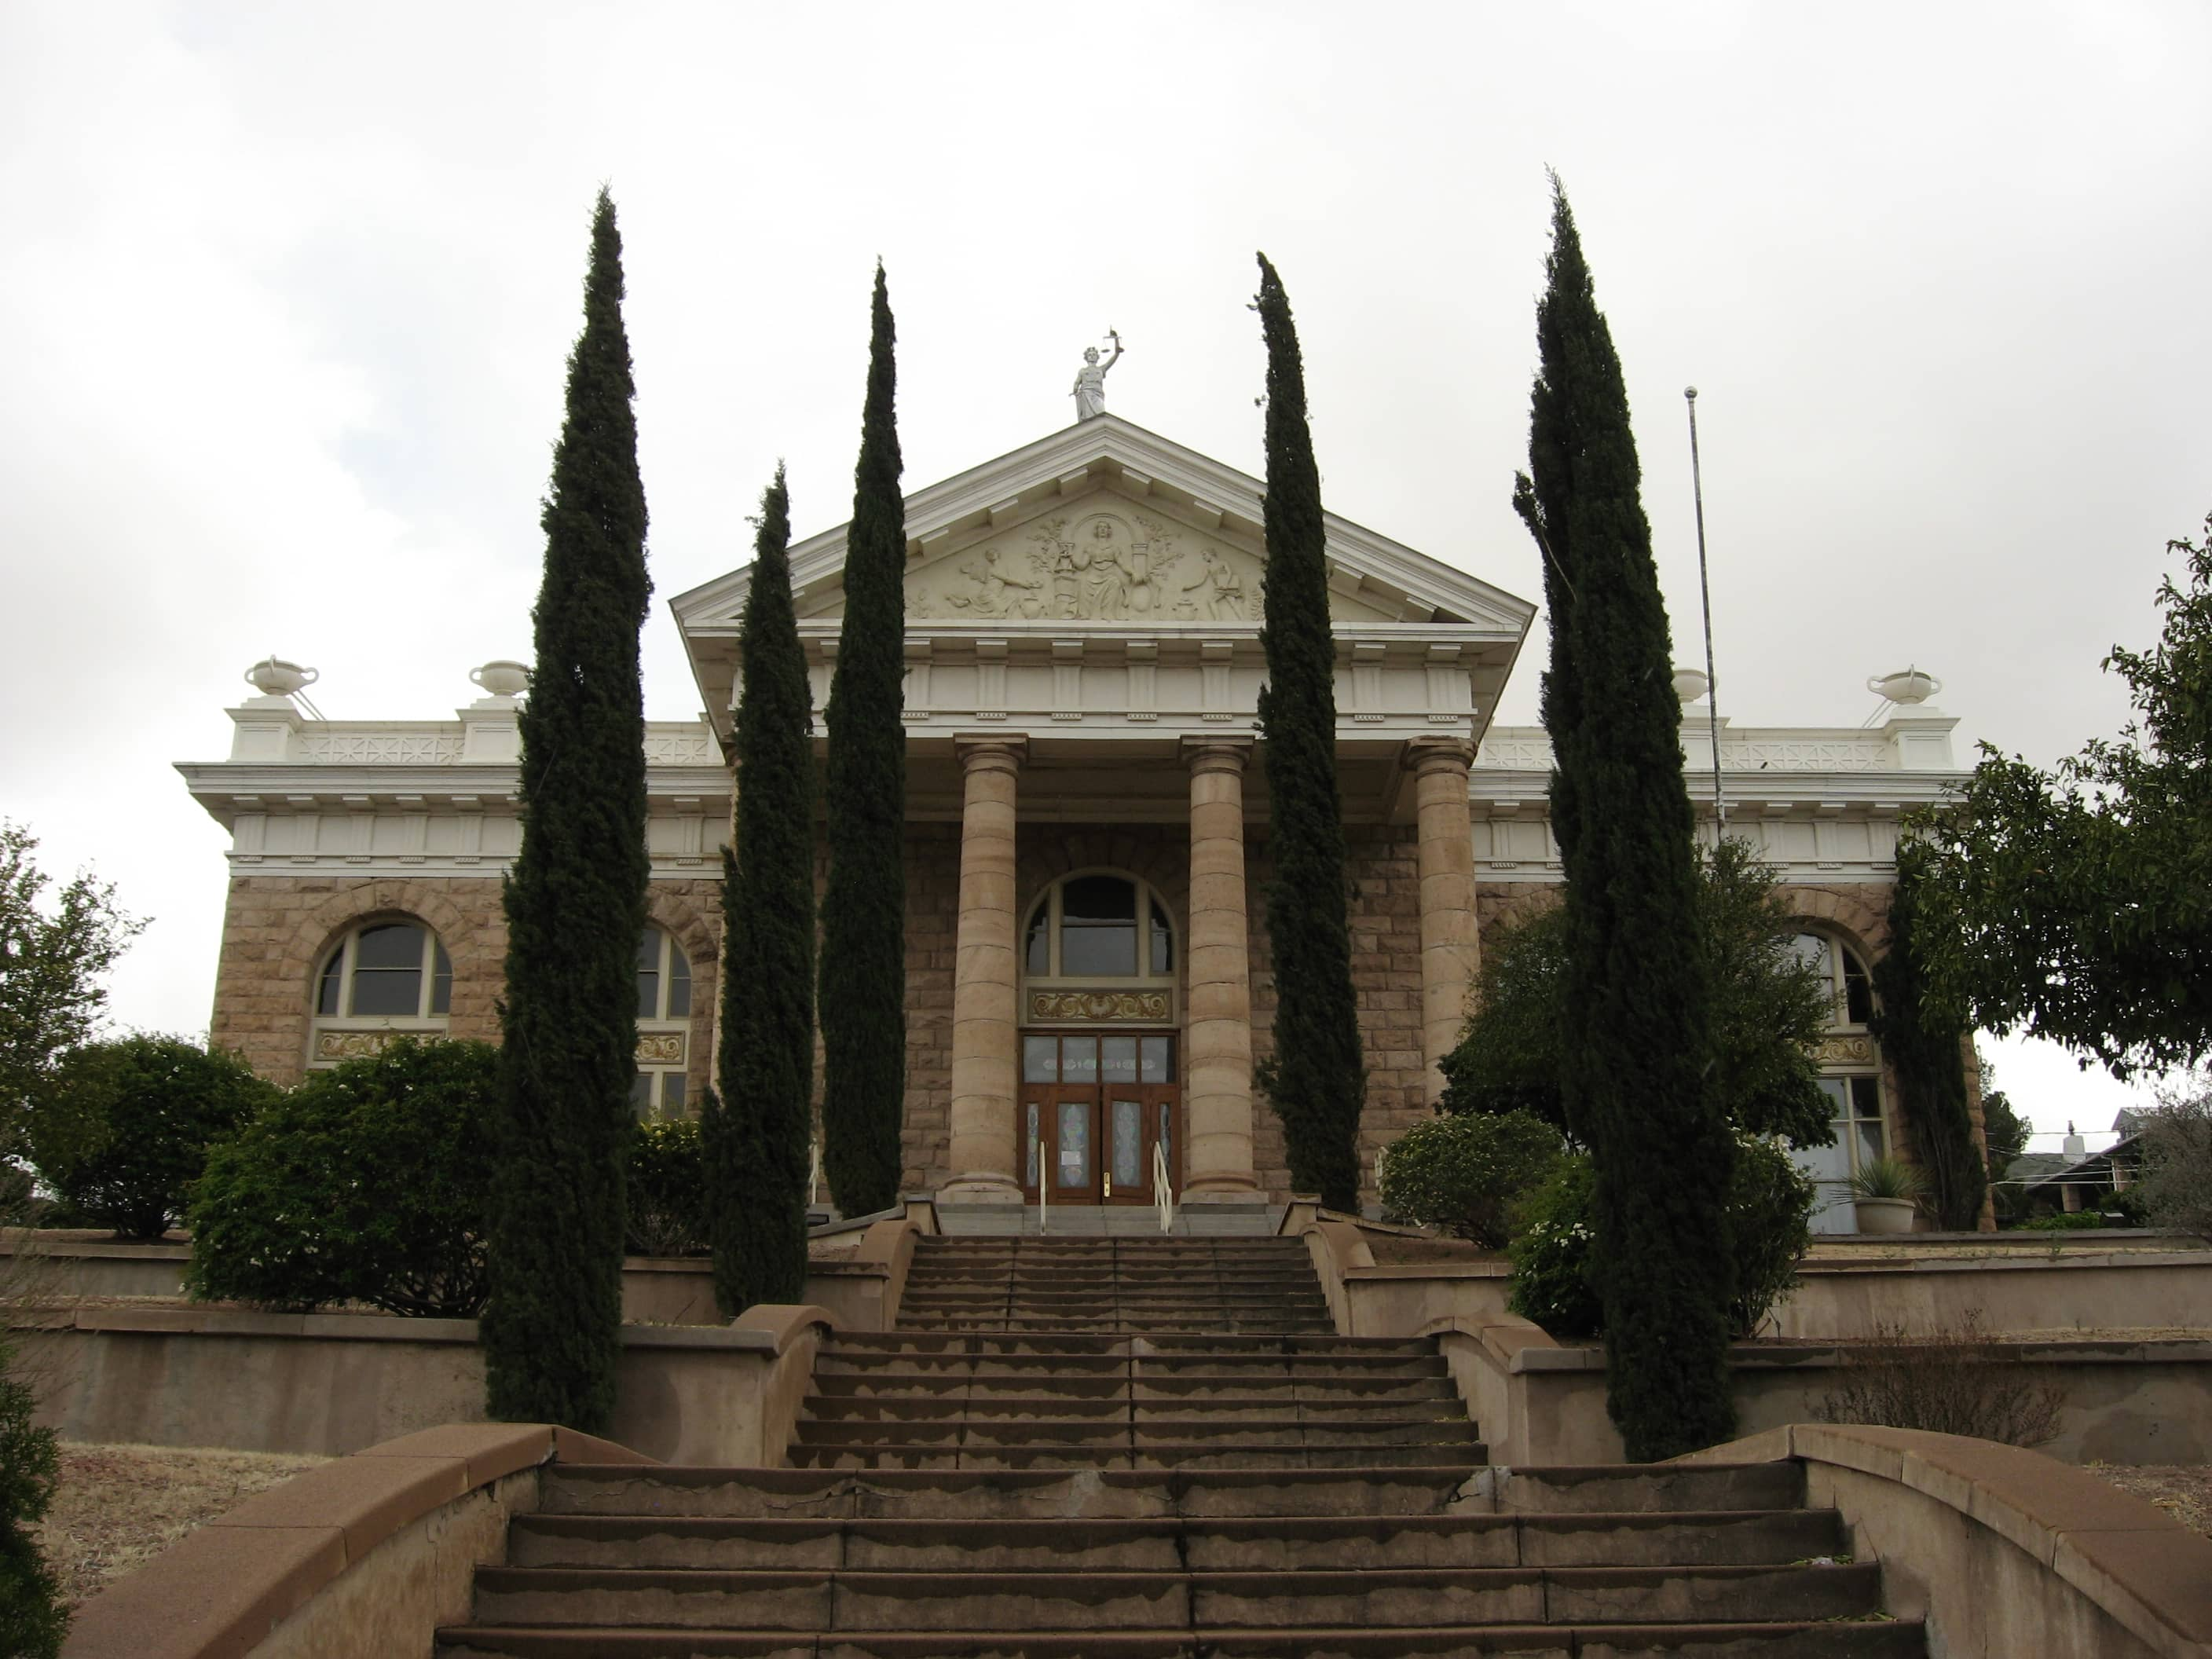 Justice Courts – Santa Cruz County, Arizona